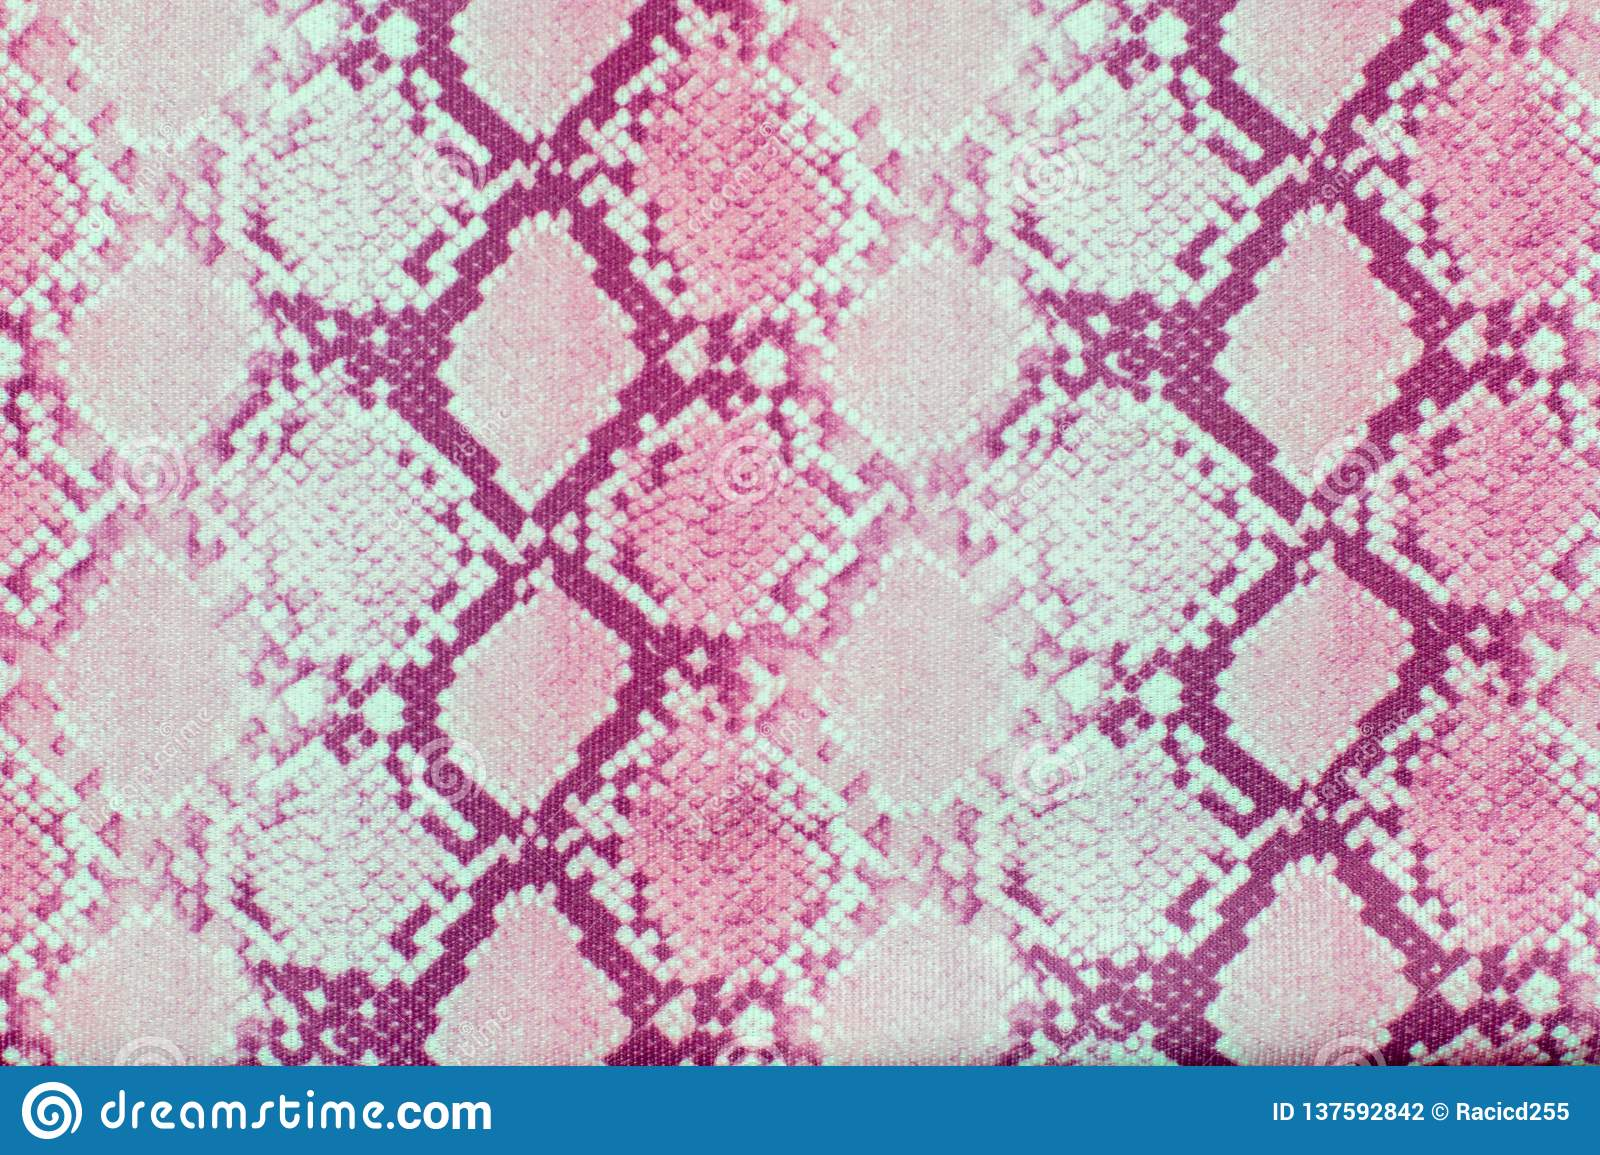 d4f75f26de7bc1 Snake skin pattern texture repeating seamless pink . Vector. Texture snake.  Fashionable print.